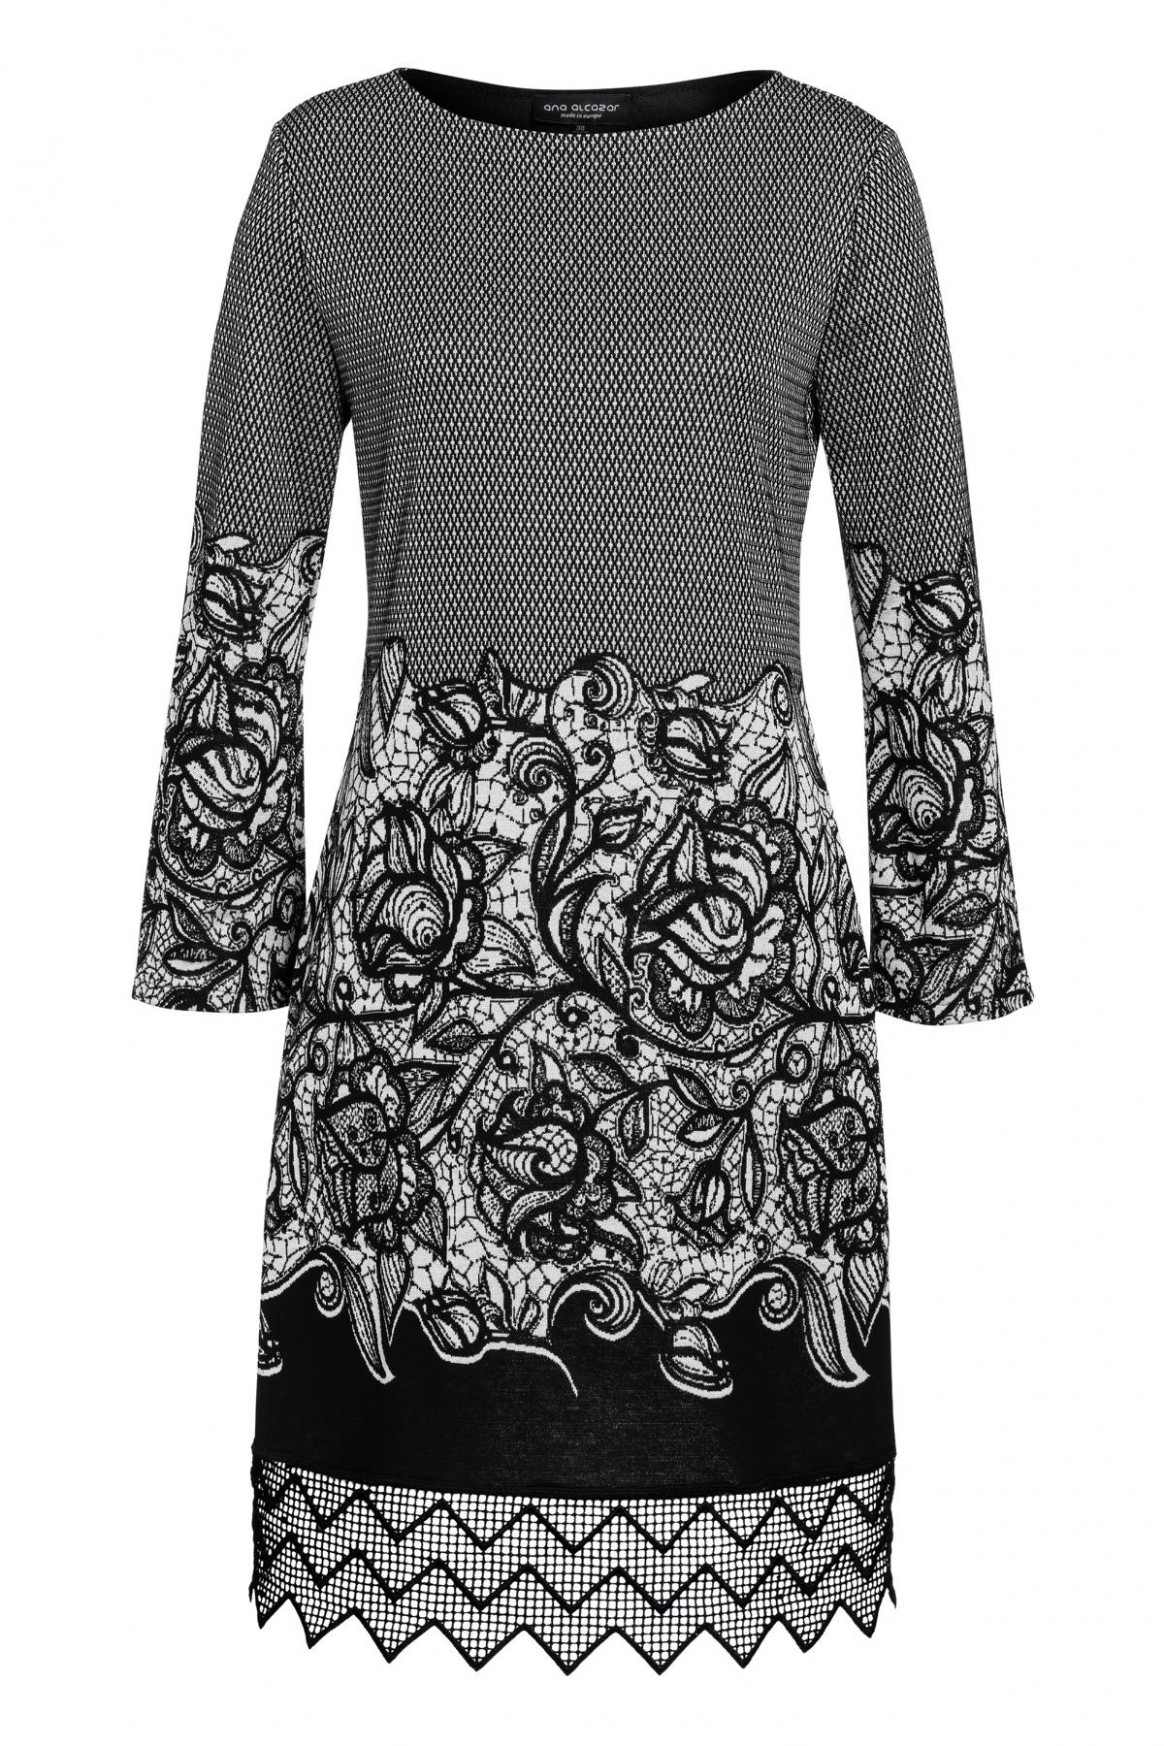 Lacke dress Vehasa in black-grey with flowers  Ana Alcazar